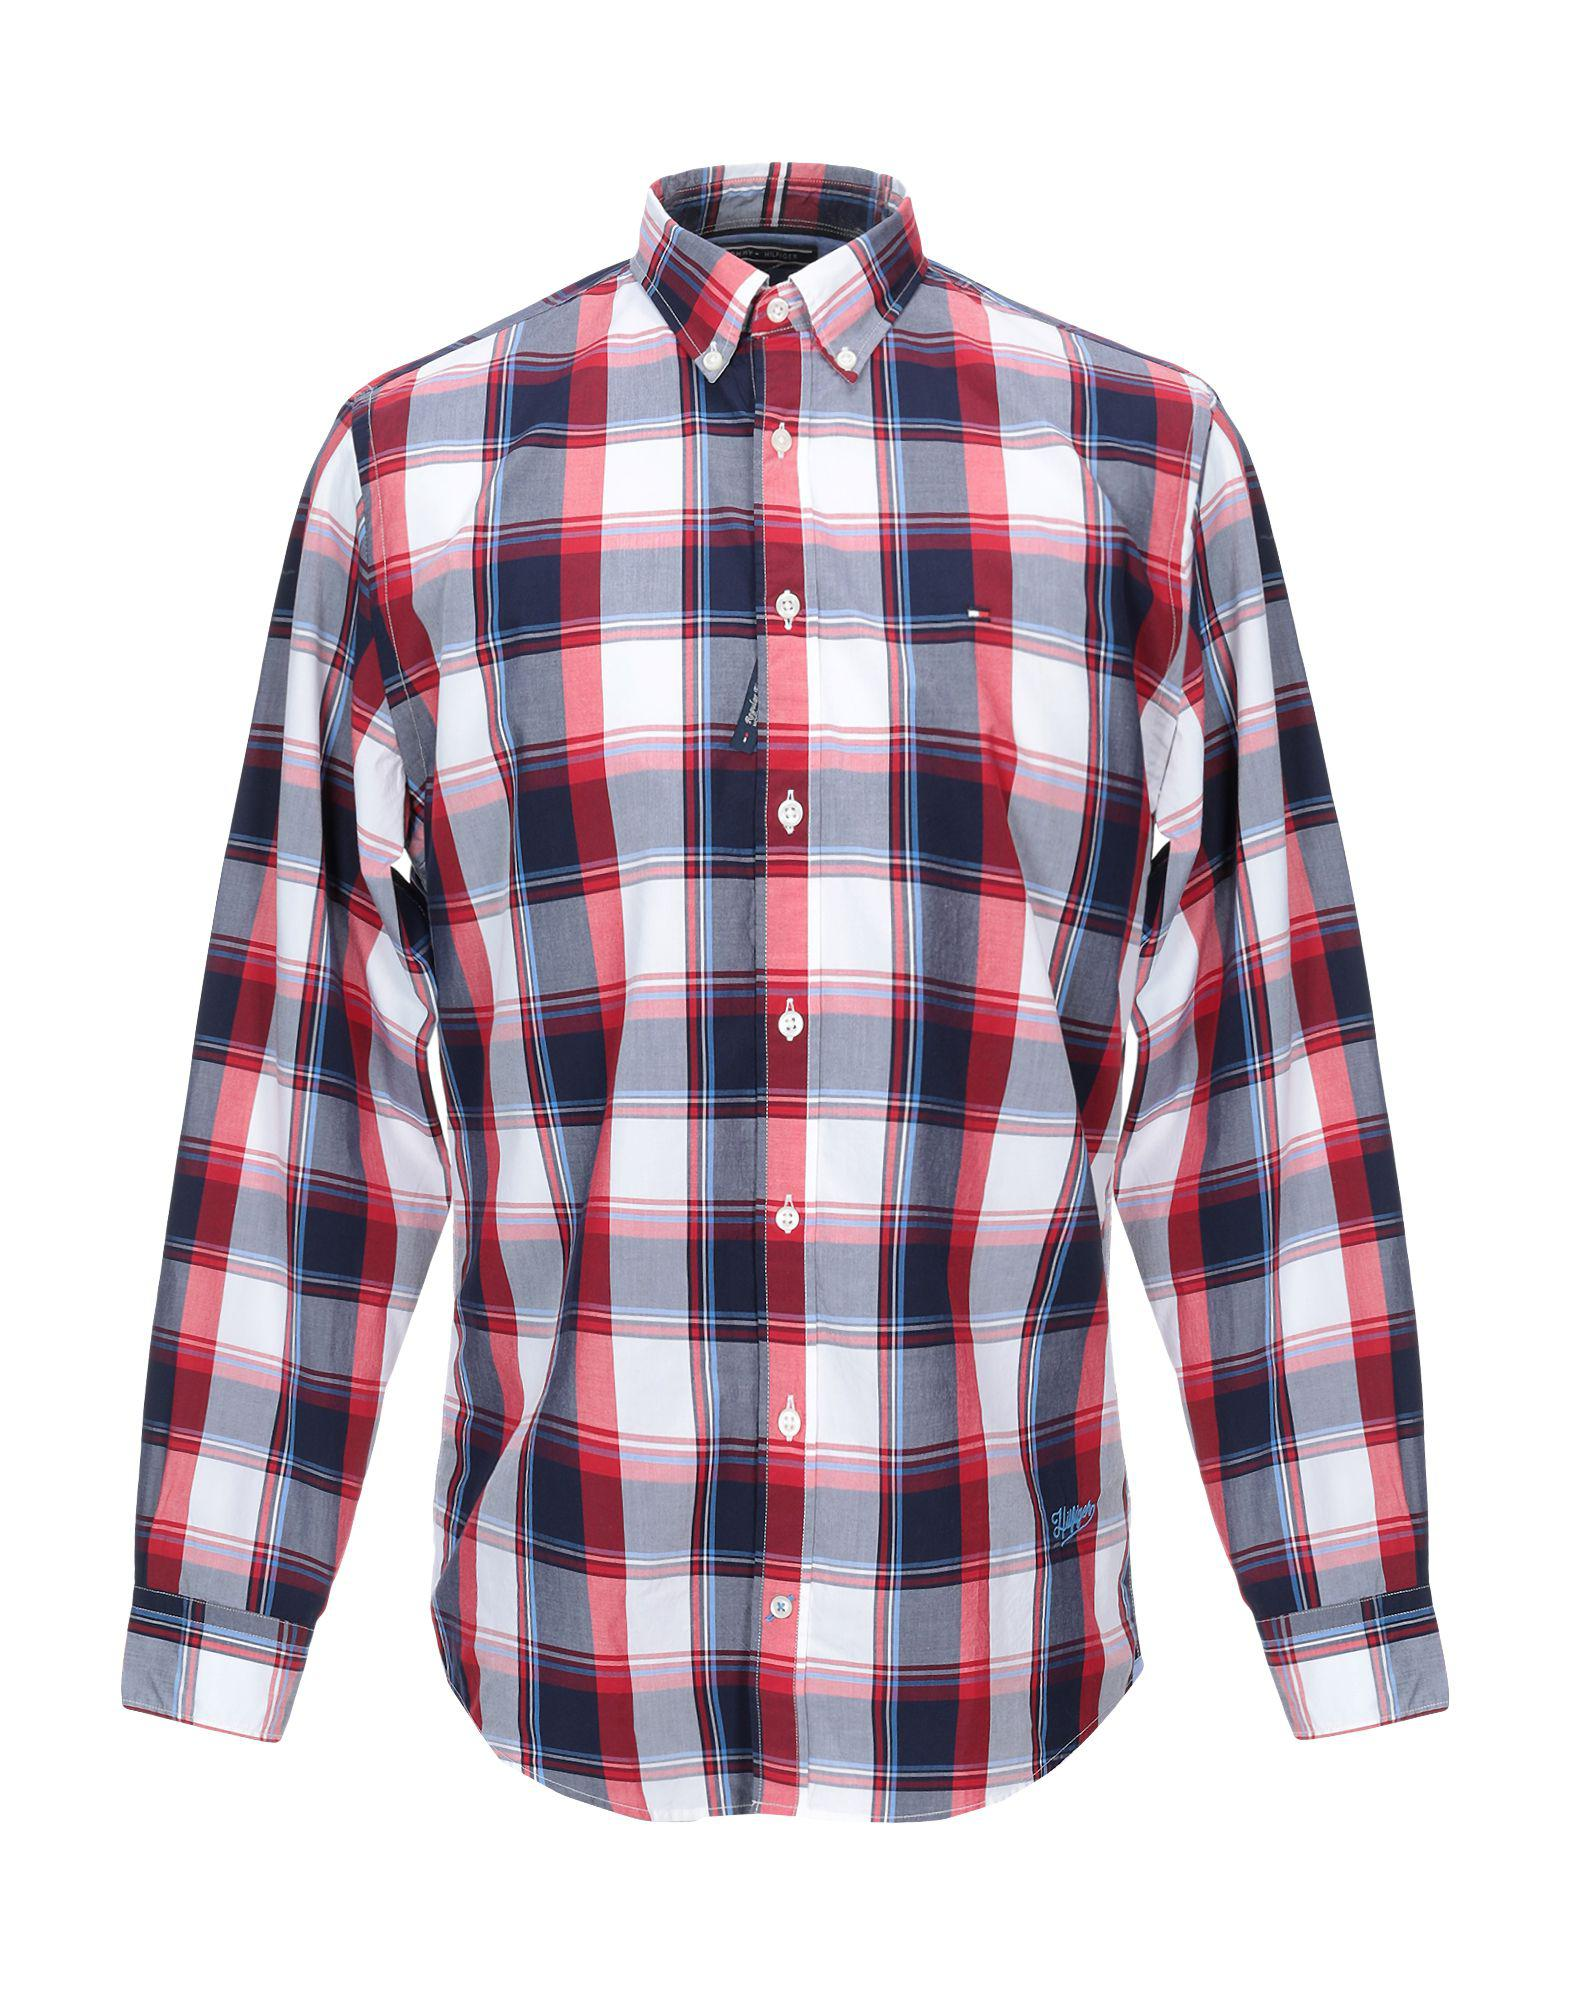 390f802060a1 Lyst - Tommy Hilfiger Shirt in Red for Men